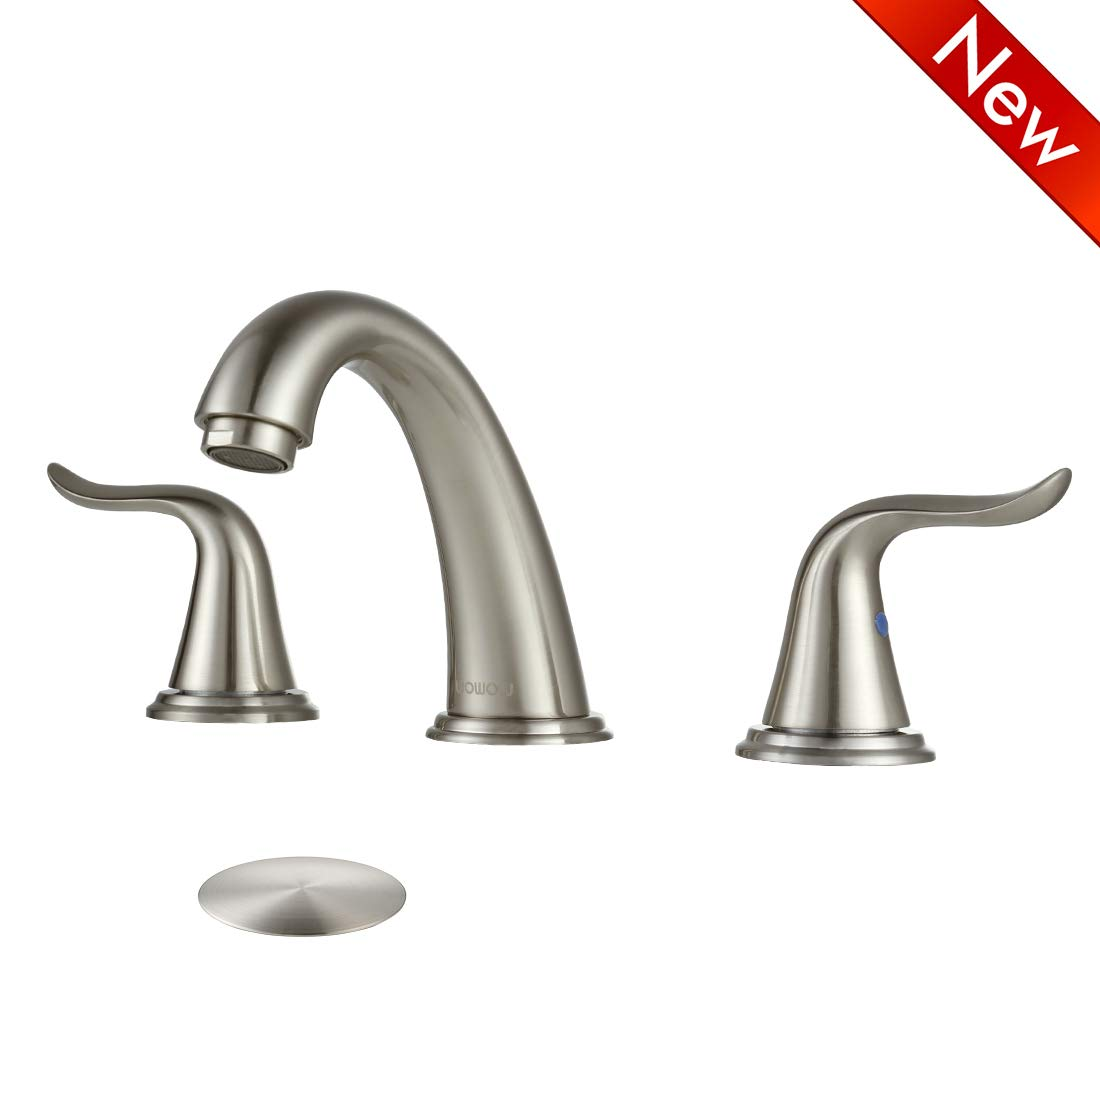 WOWOW Bathroom Faucet Brushed Nickel 2 Handle 3 Hole 8 Inch Stainless Steel High-Arc Widespread Basin Faucet Lavatory Bathroom Sink Commercial Contemporary, With Pop Up Drain